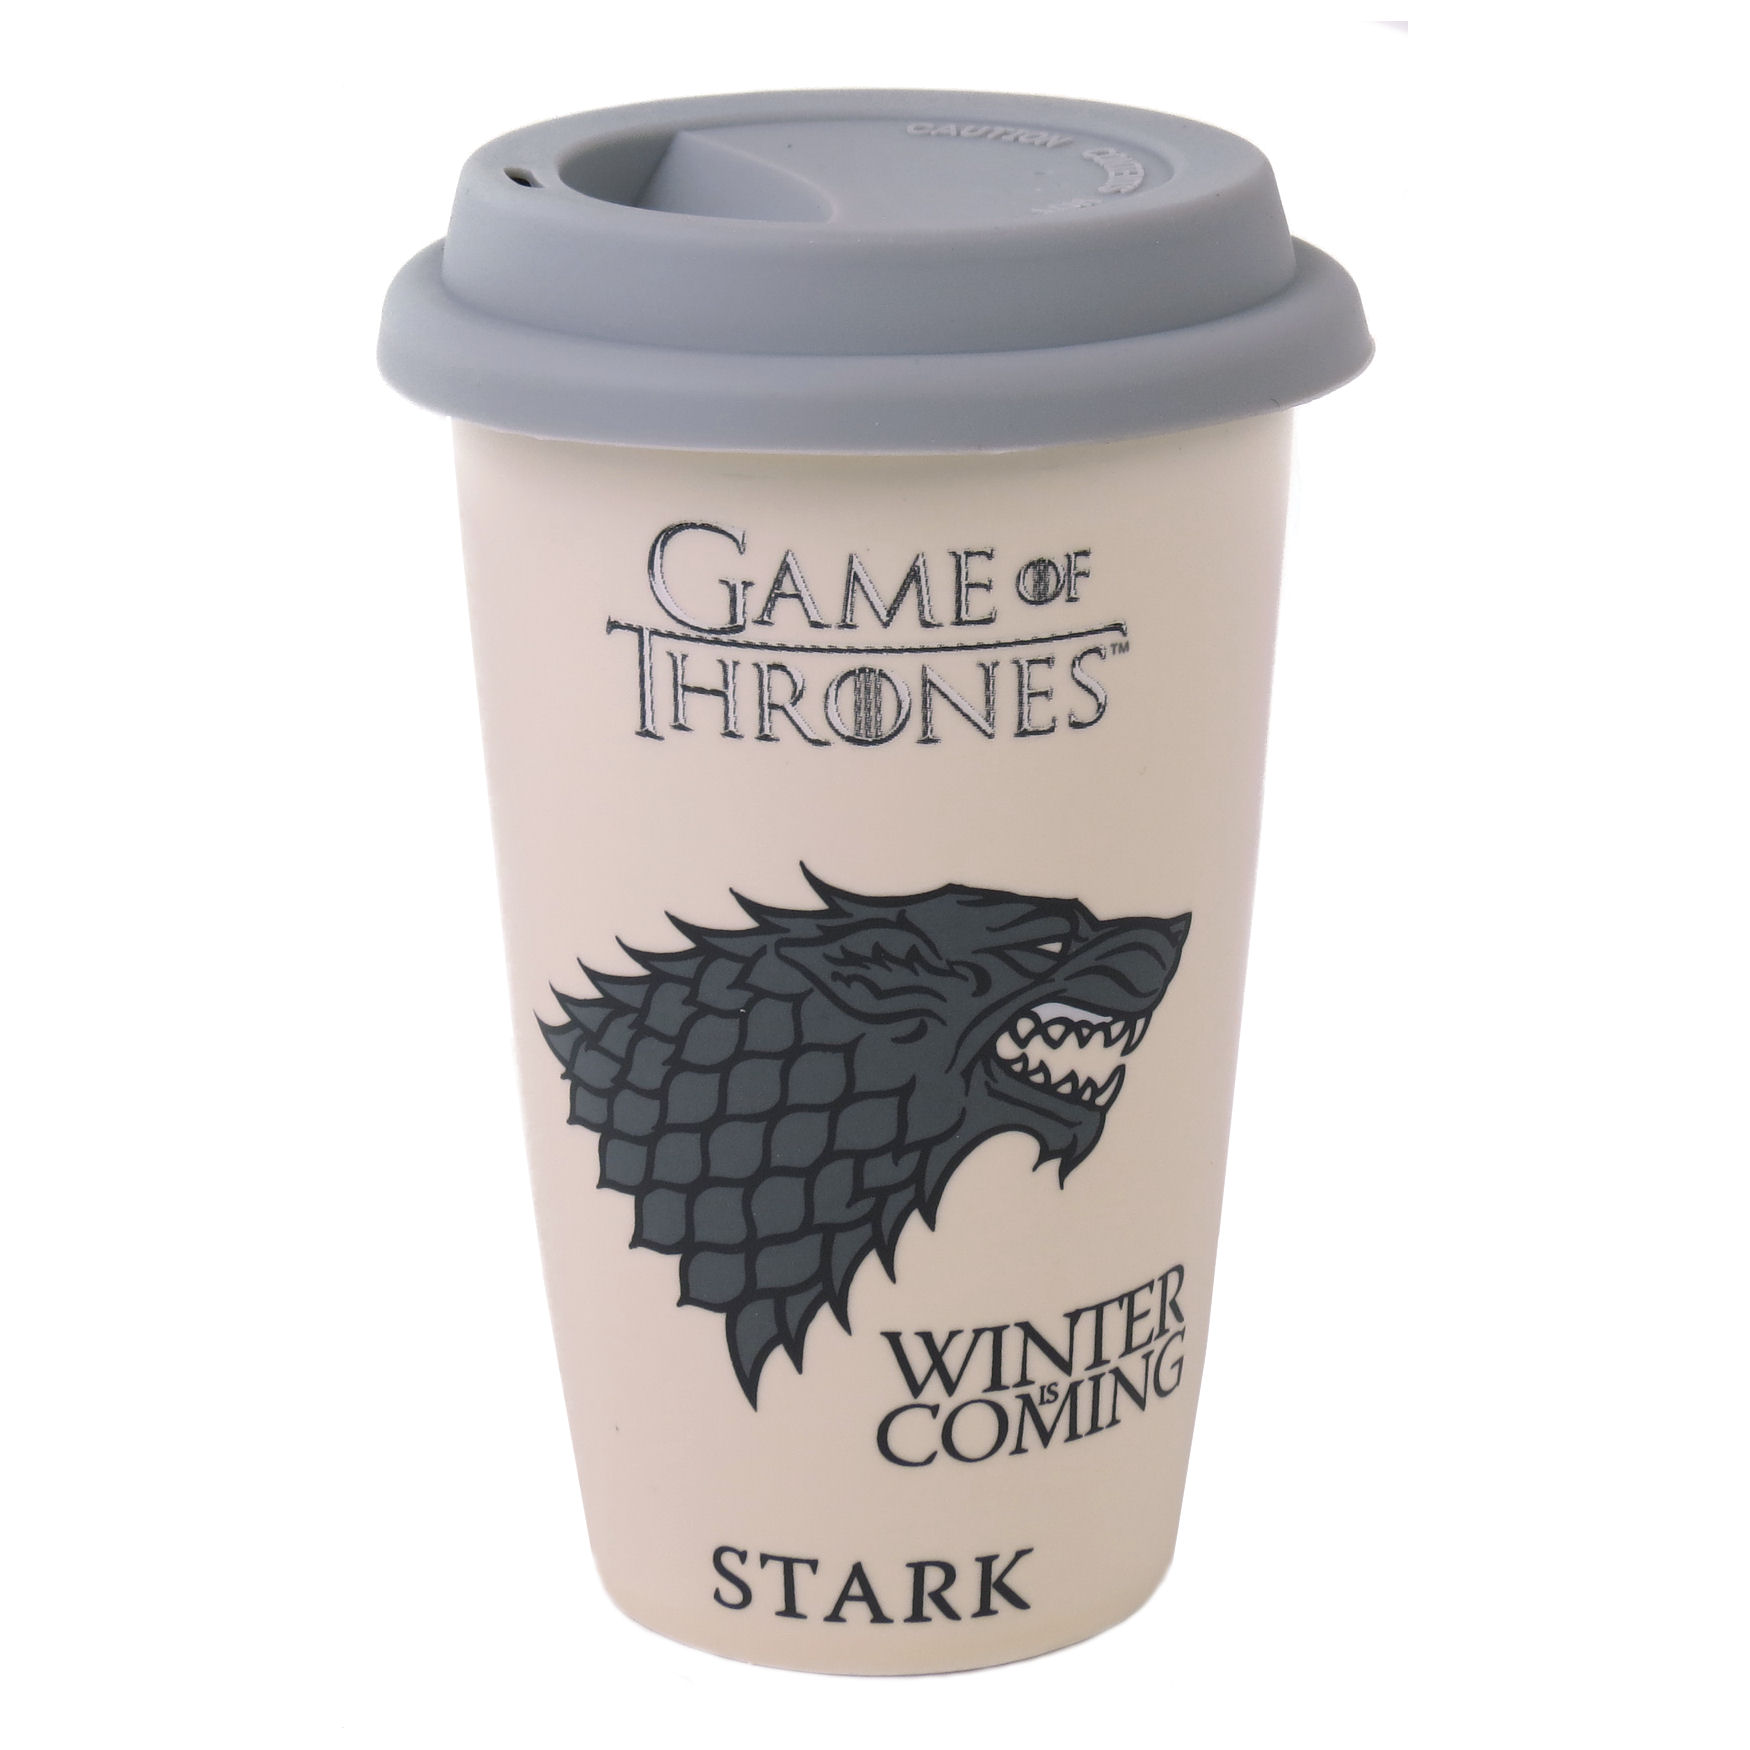 Game of Thrones House Stark Ceramic Travel Mug